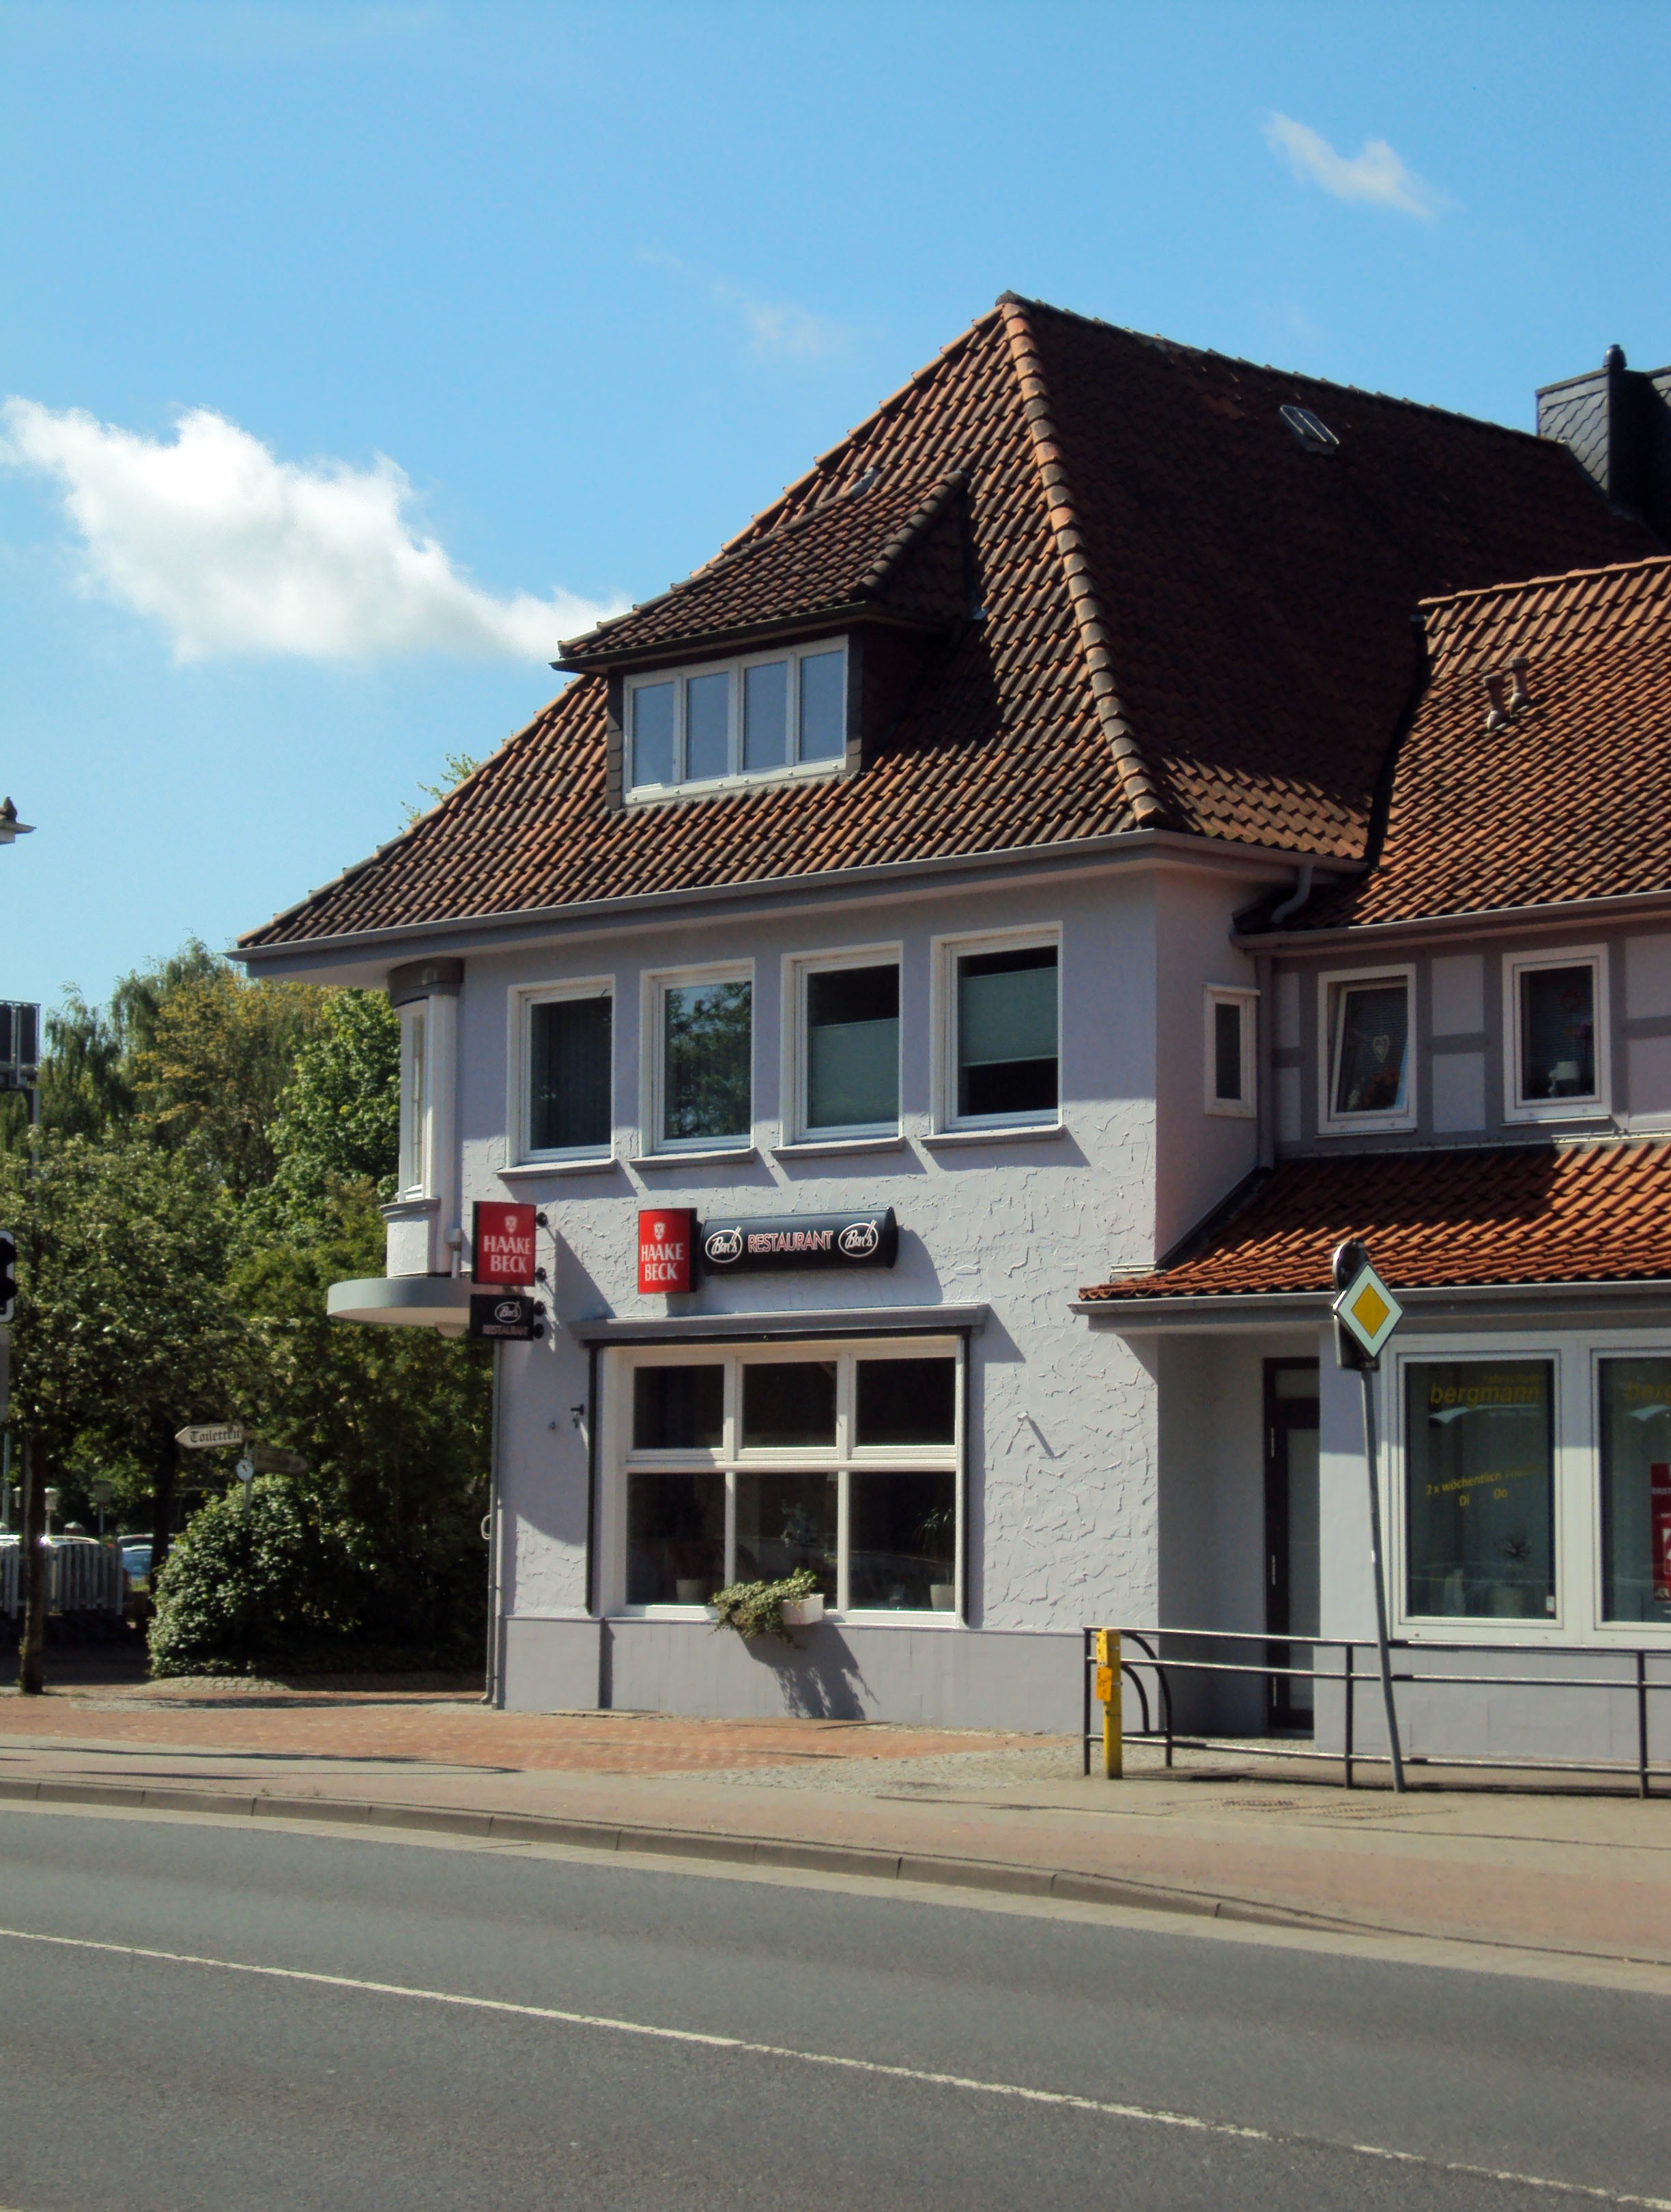 Cafe Felix in Syke - OT Syke-Stadt ( CC BY-NC-SA)